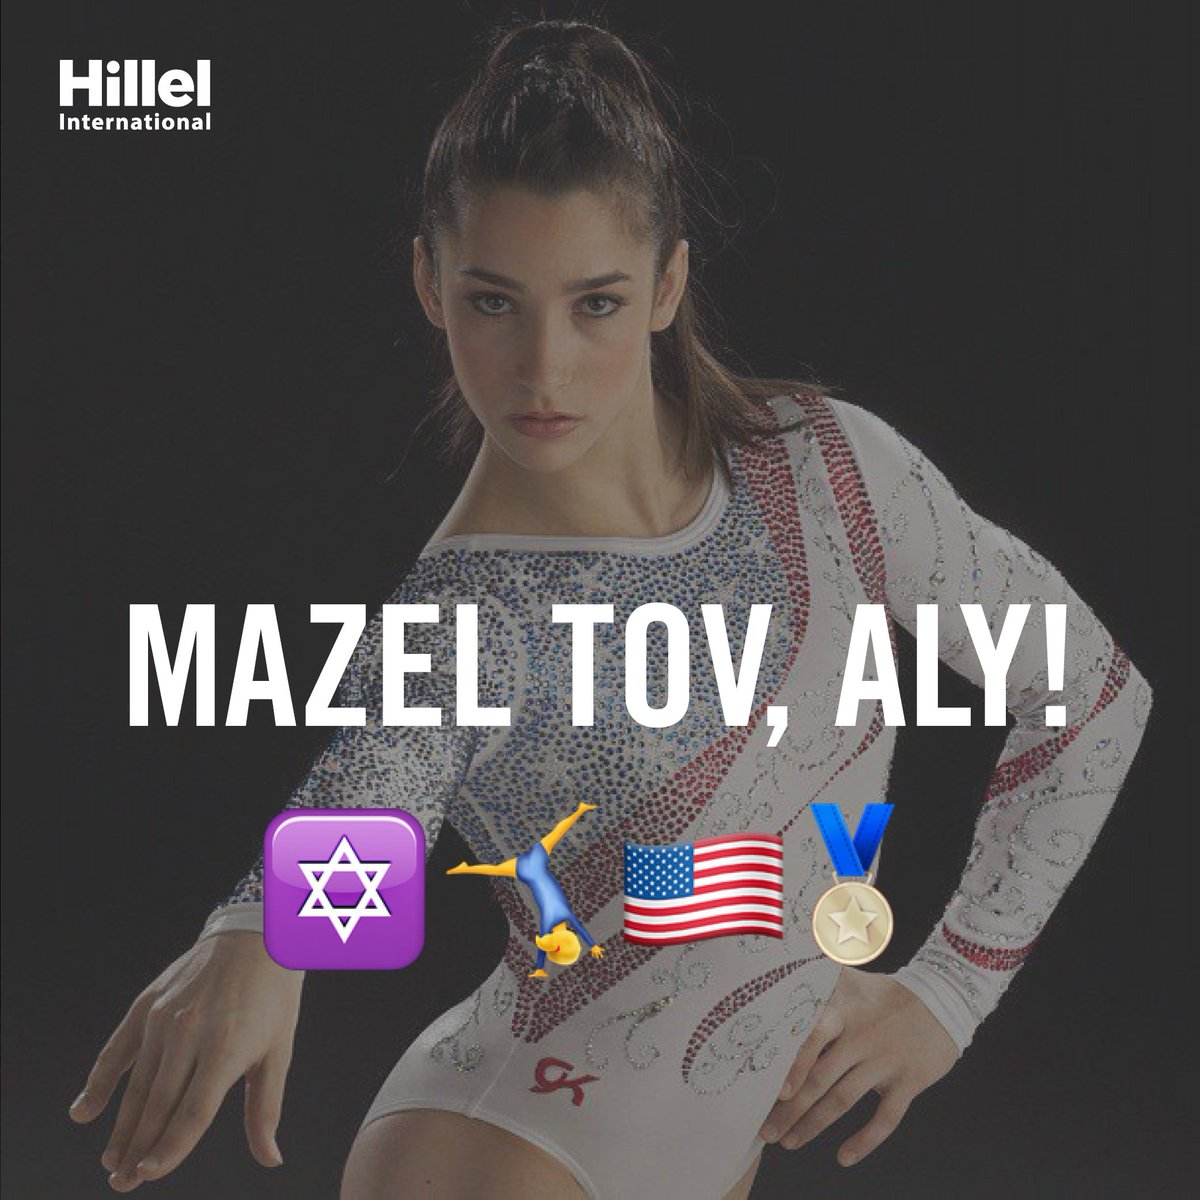 Mazel tov, @Aly_Raisman! We have so much nachas (pride) for you after last night's silver medal win. https://t.co/upb0cD0nHe